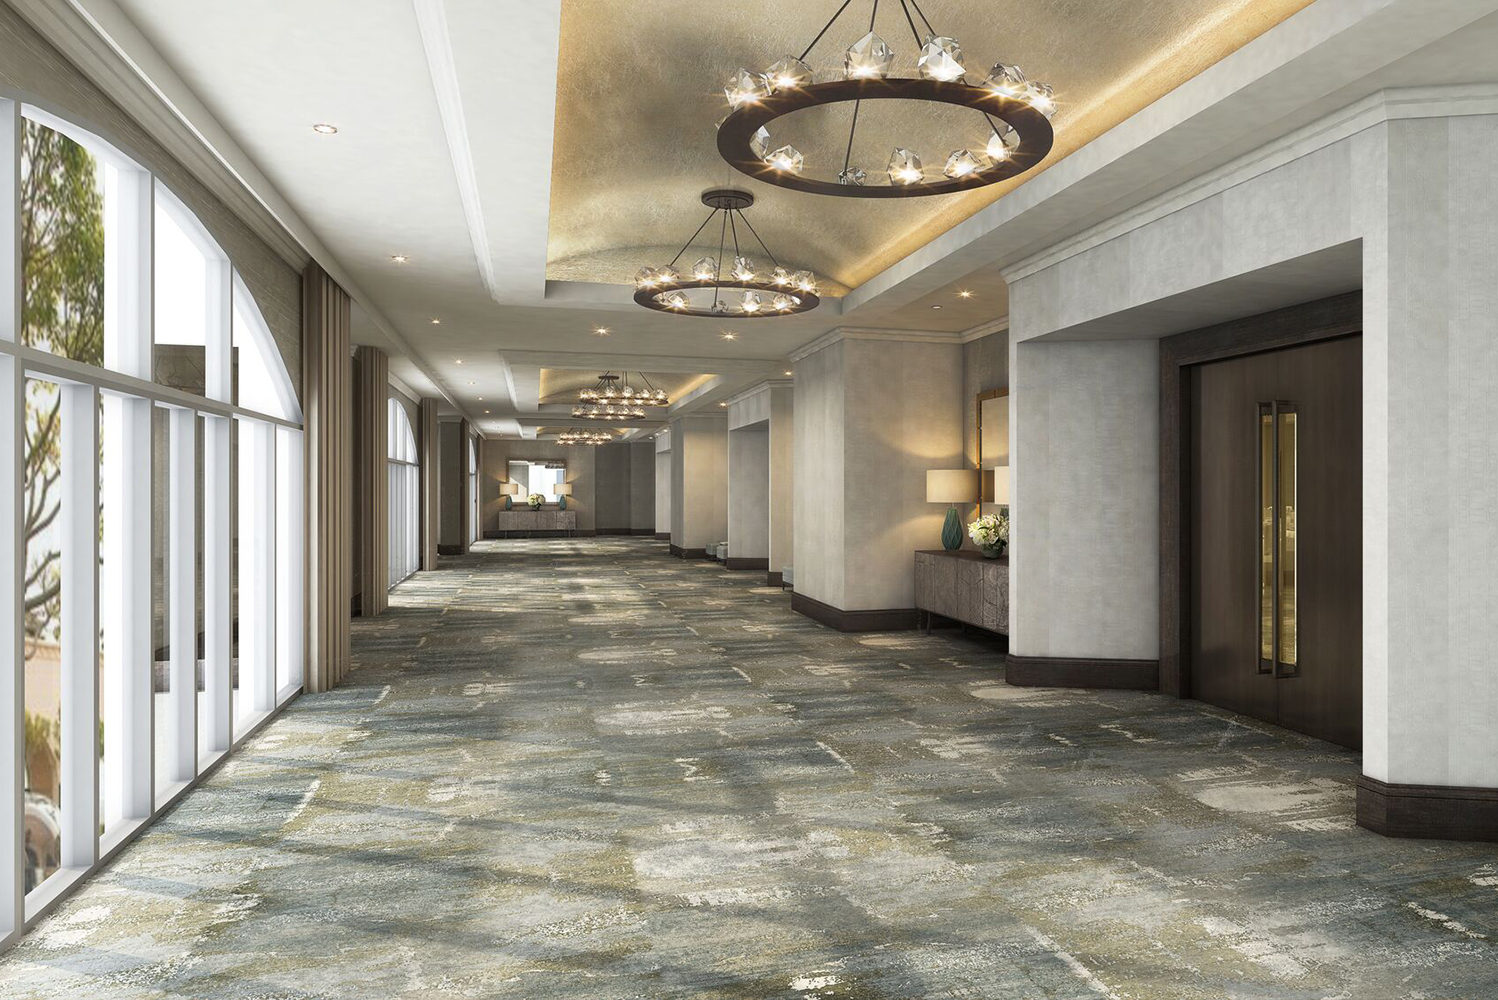 Phase two of the renovation consists of the resort's meeting space, including two ballrooms, the ballrooms' foyers, meeting rooms and the public restrooms nearby.